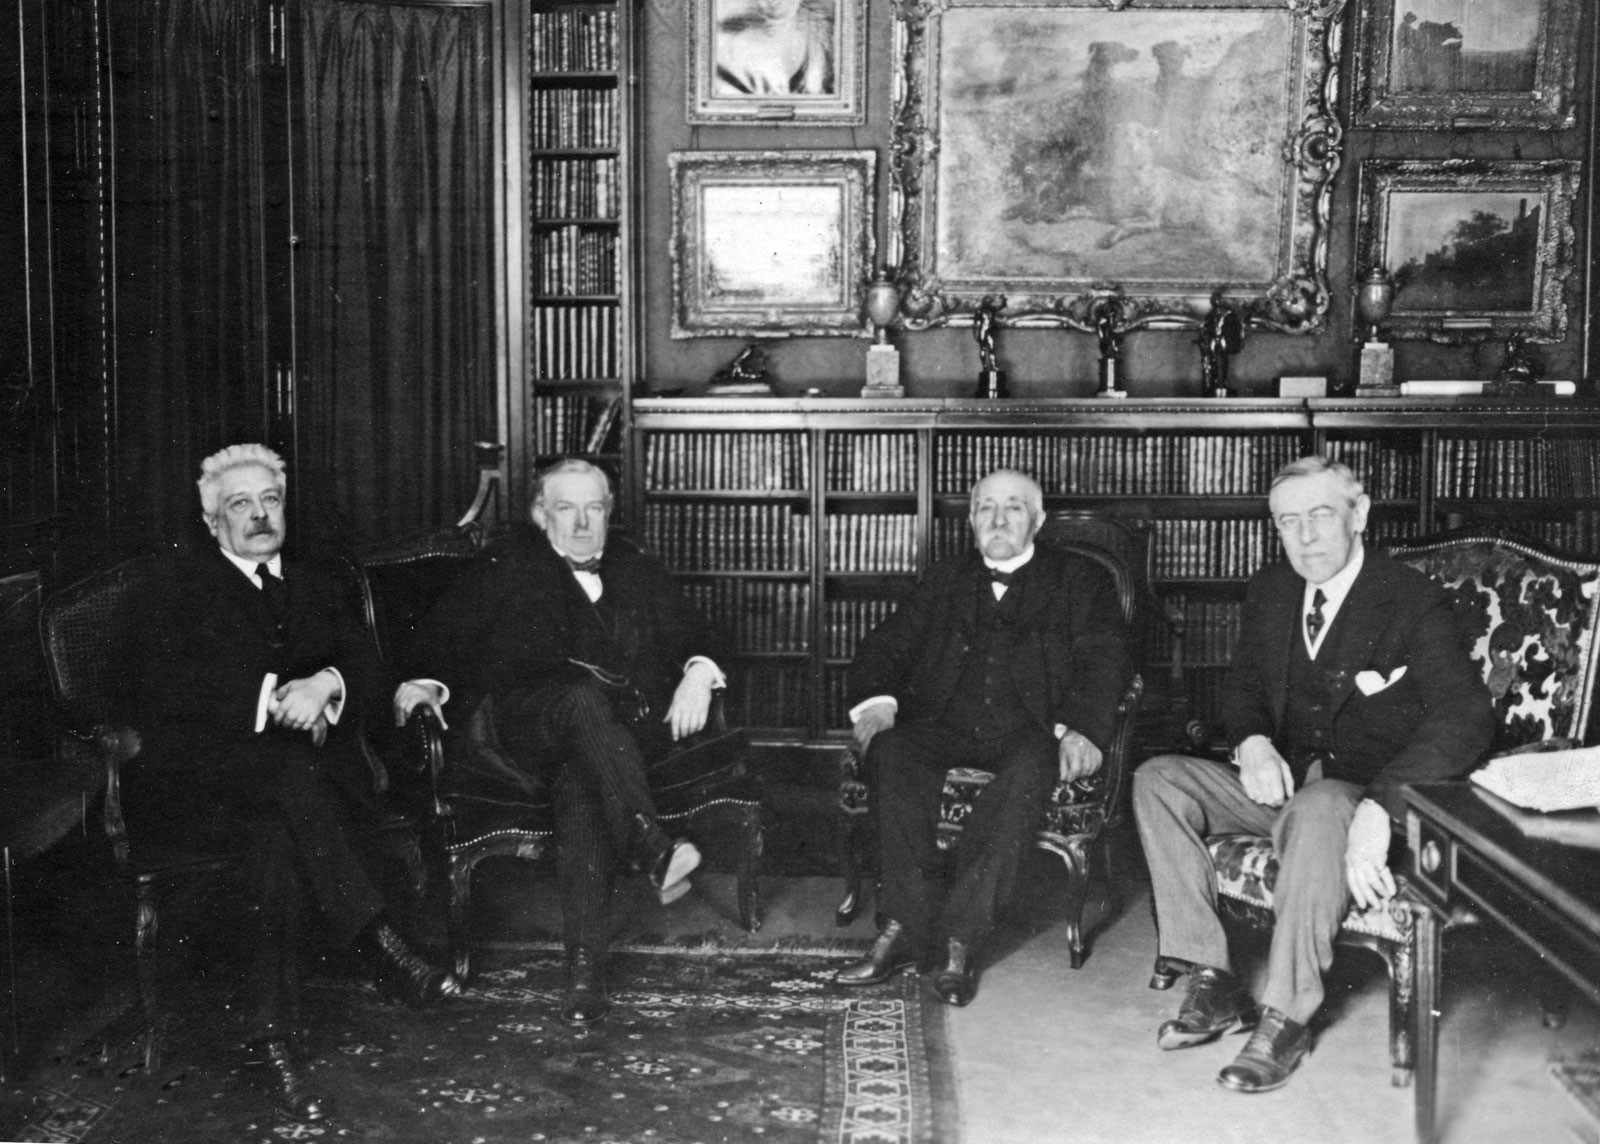 (From left to right) Italian Prime Minister Vittorio Emanuele Orlando, British Prime Minister David Lloyd George, French Premier Georges Clemenceau, and U.S. Pres. Woodrow Wilson, Paris, 1919. Encyclopædia Britannica, Inc.